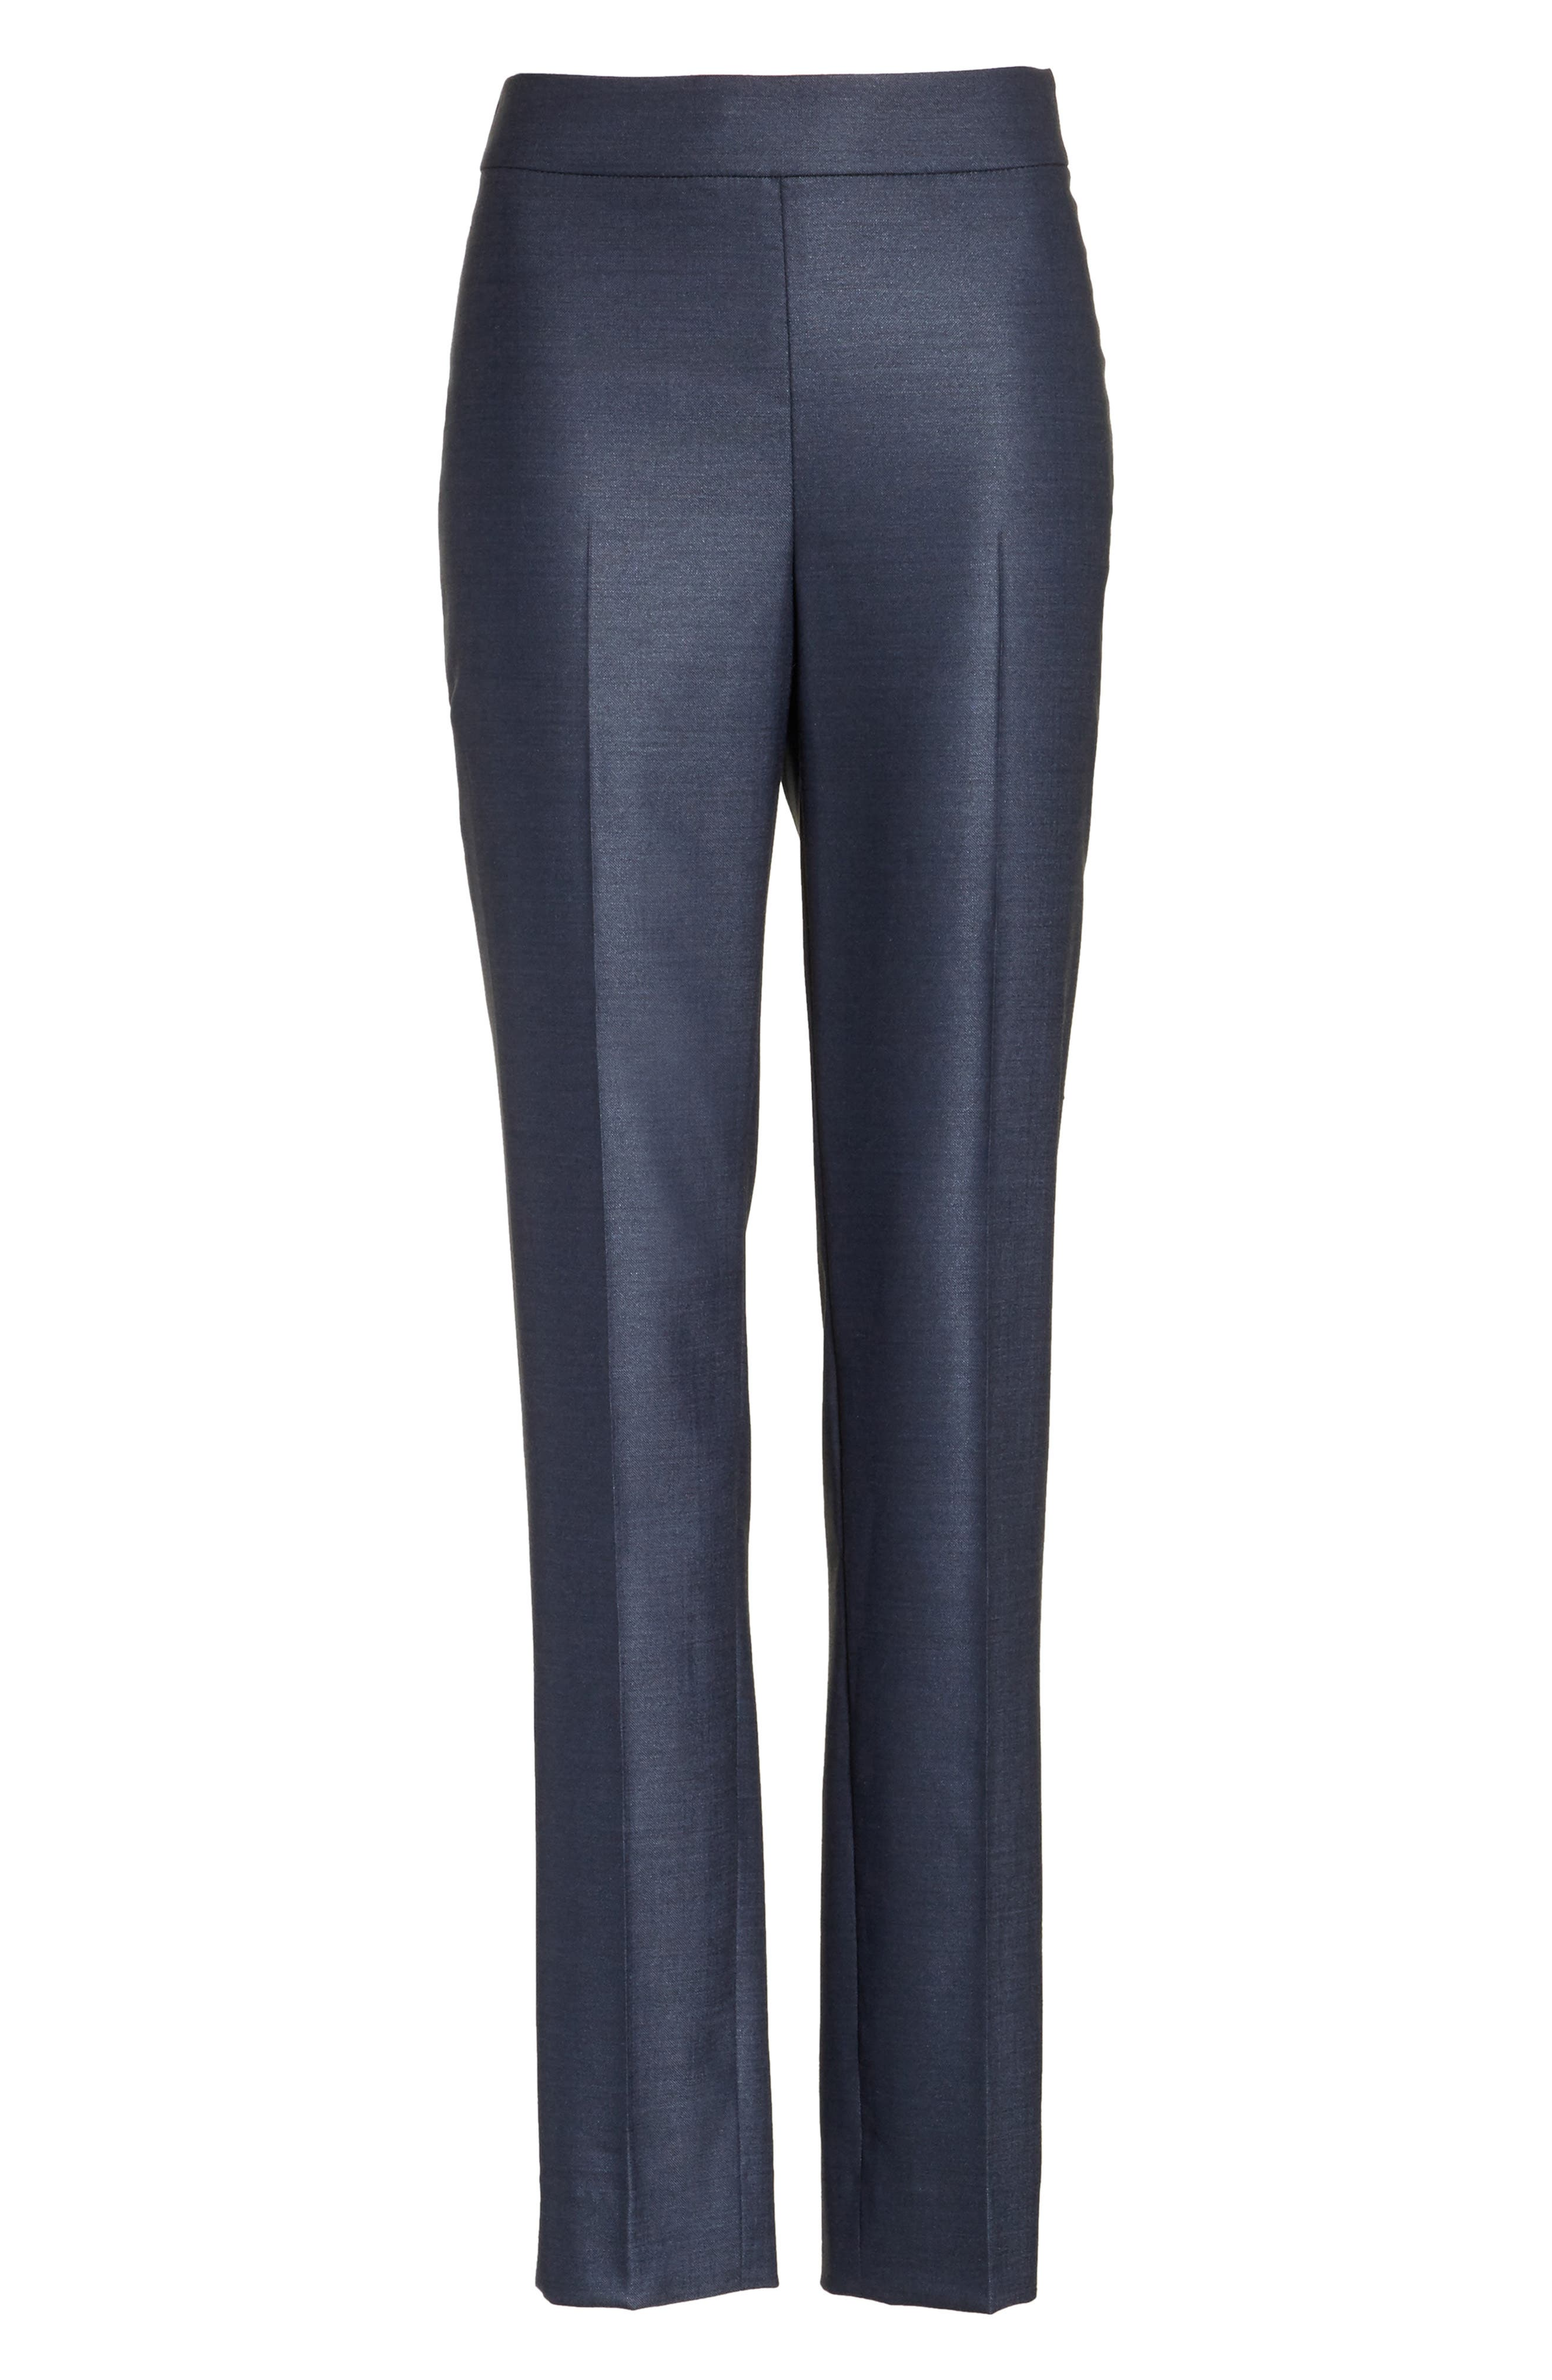 Stretch Birdseye Skinny Ankle Pants,                             Alternate thumbnail 6, color,                             450